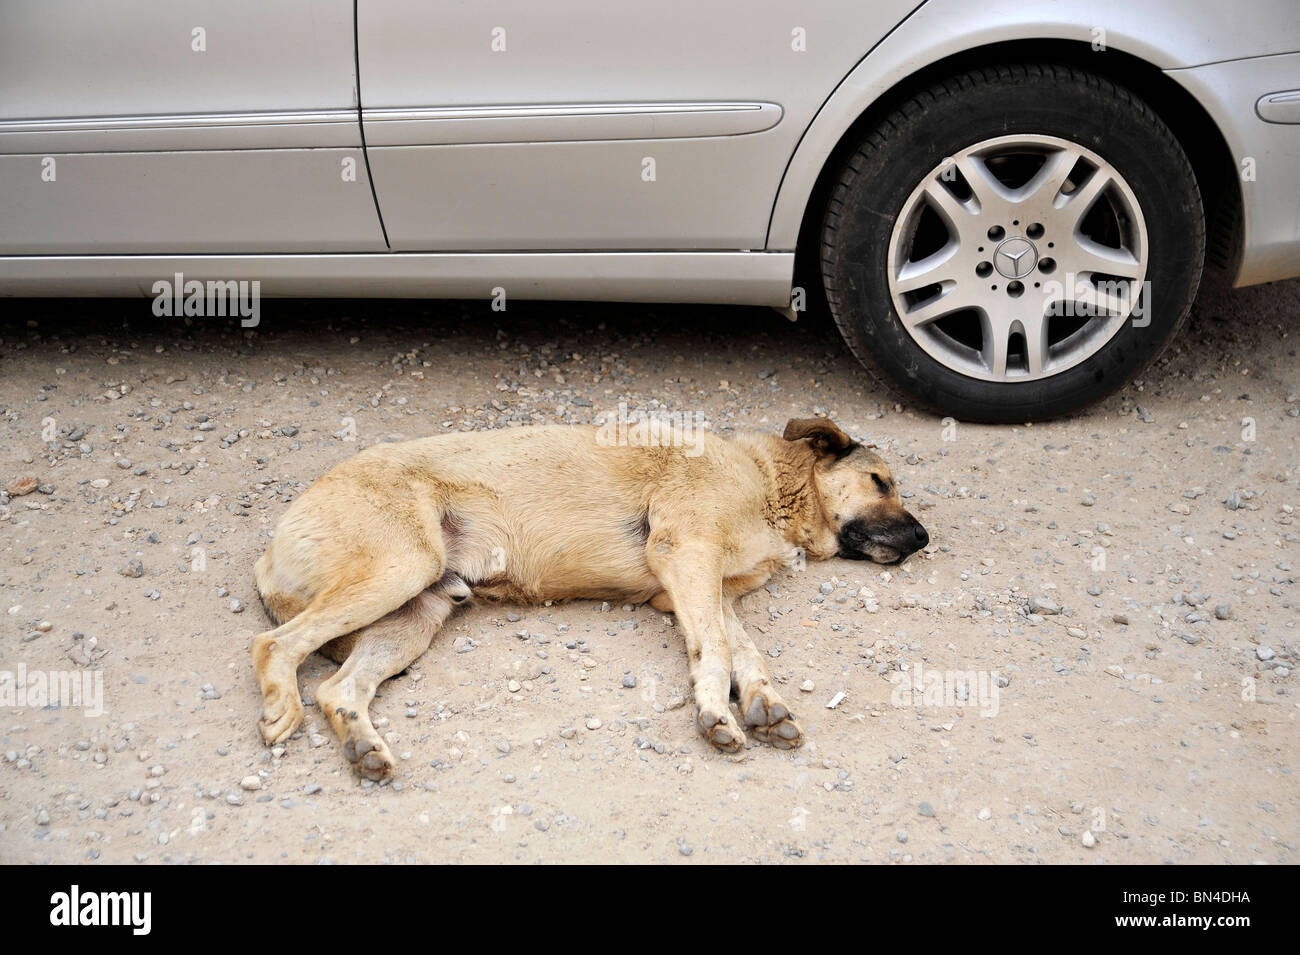 A sleeping dog observed by a car in Torba Turkey - Stock Image